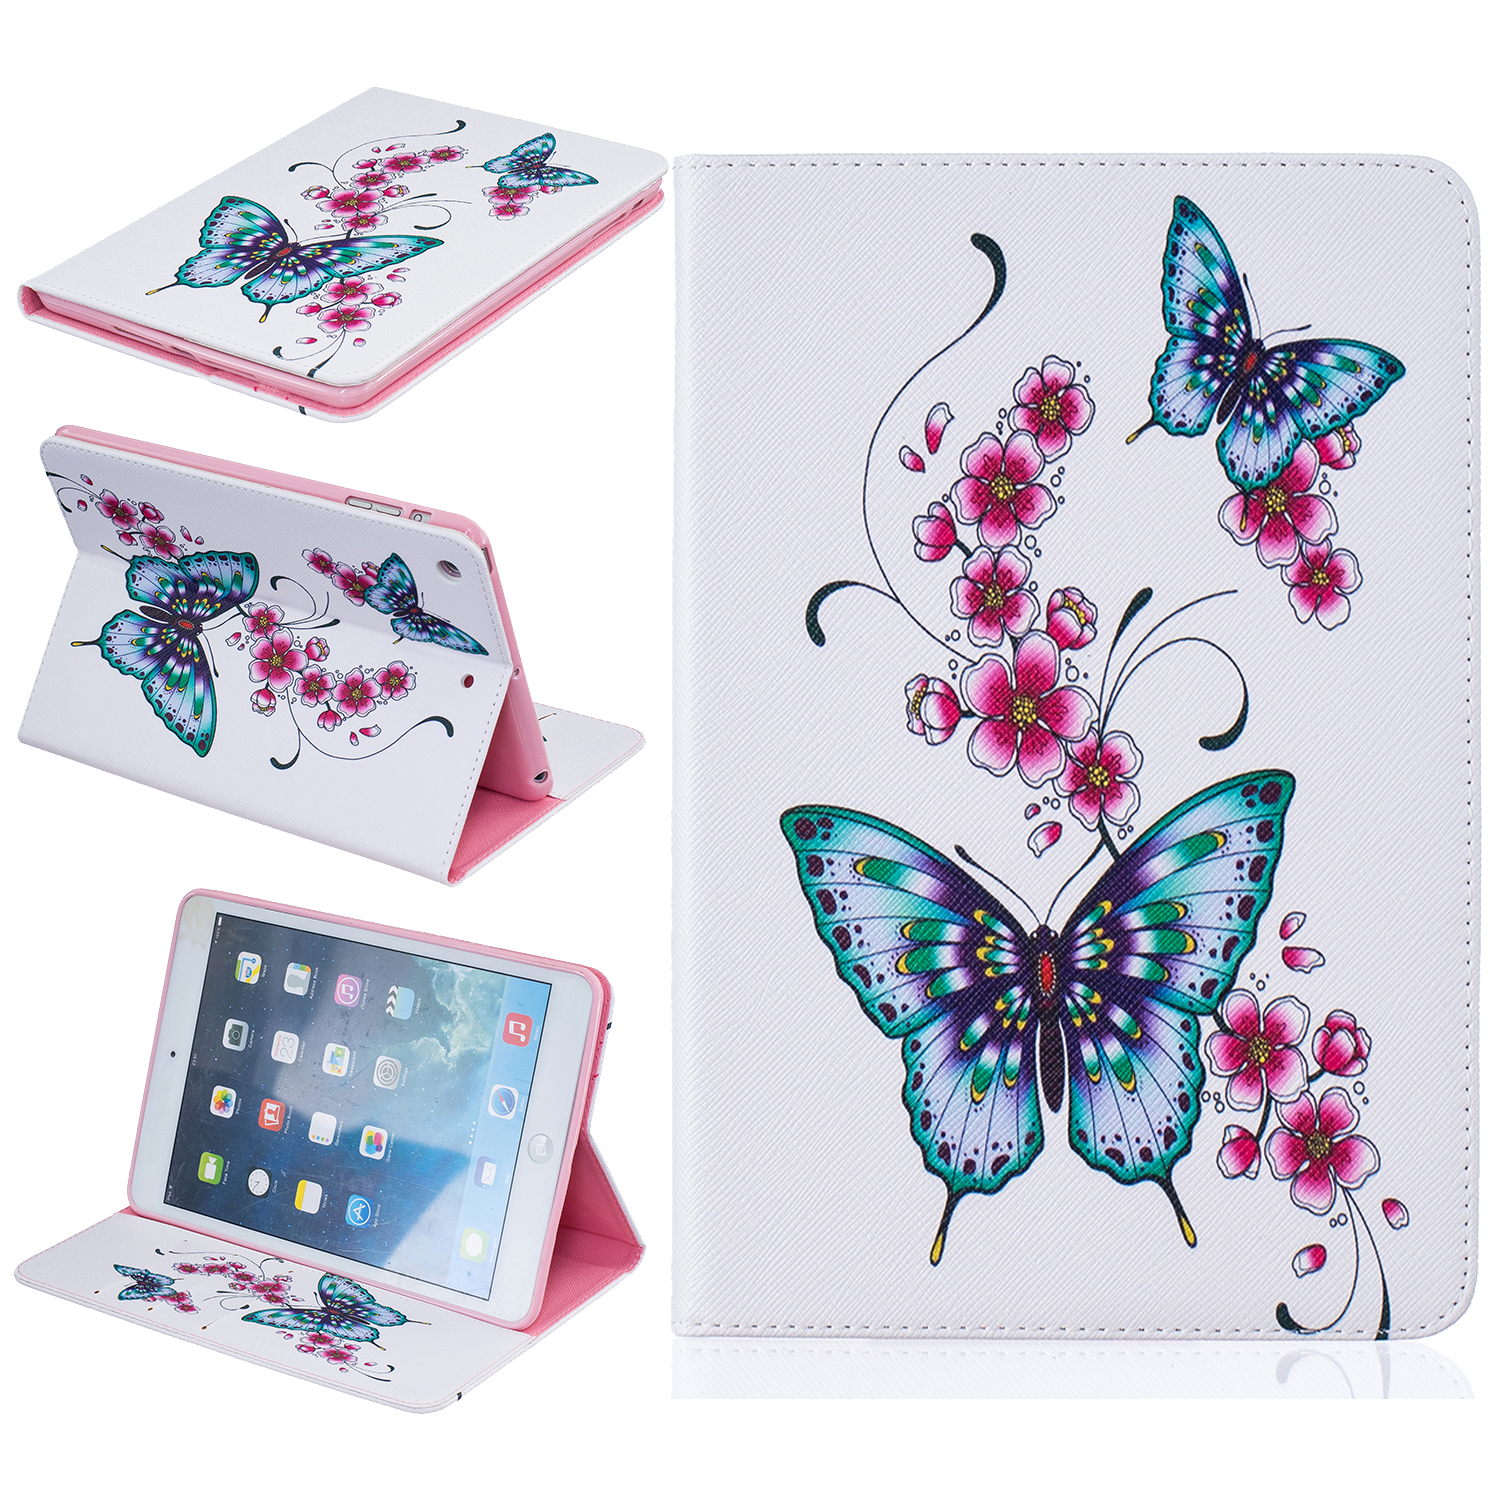 Butterfly Print PU Leather Case Cover For Apple iPad Air 3 2 1 Stand Cases For iPad 7 6 5 4 3 2 ipad mini 4 3 2 Tablet